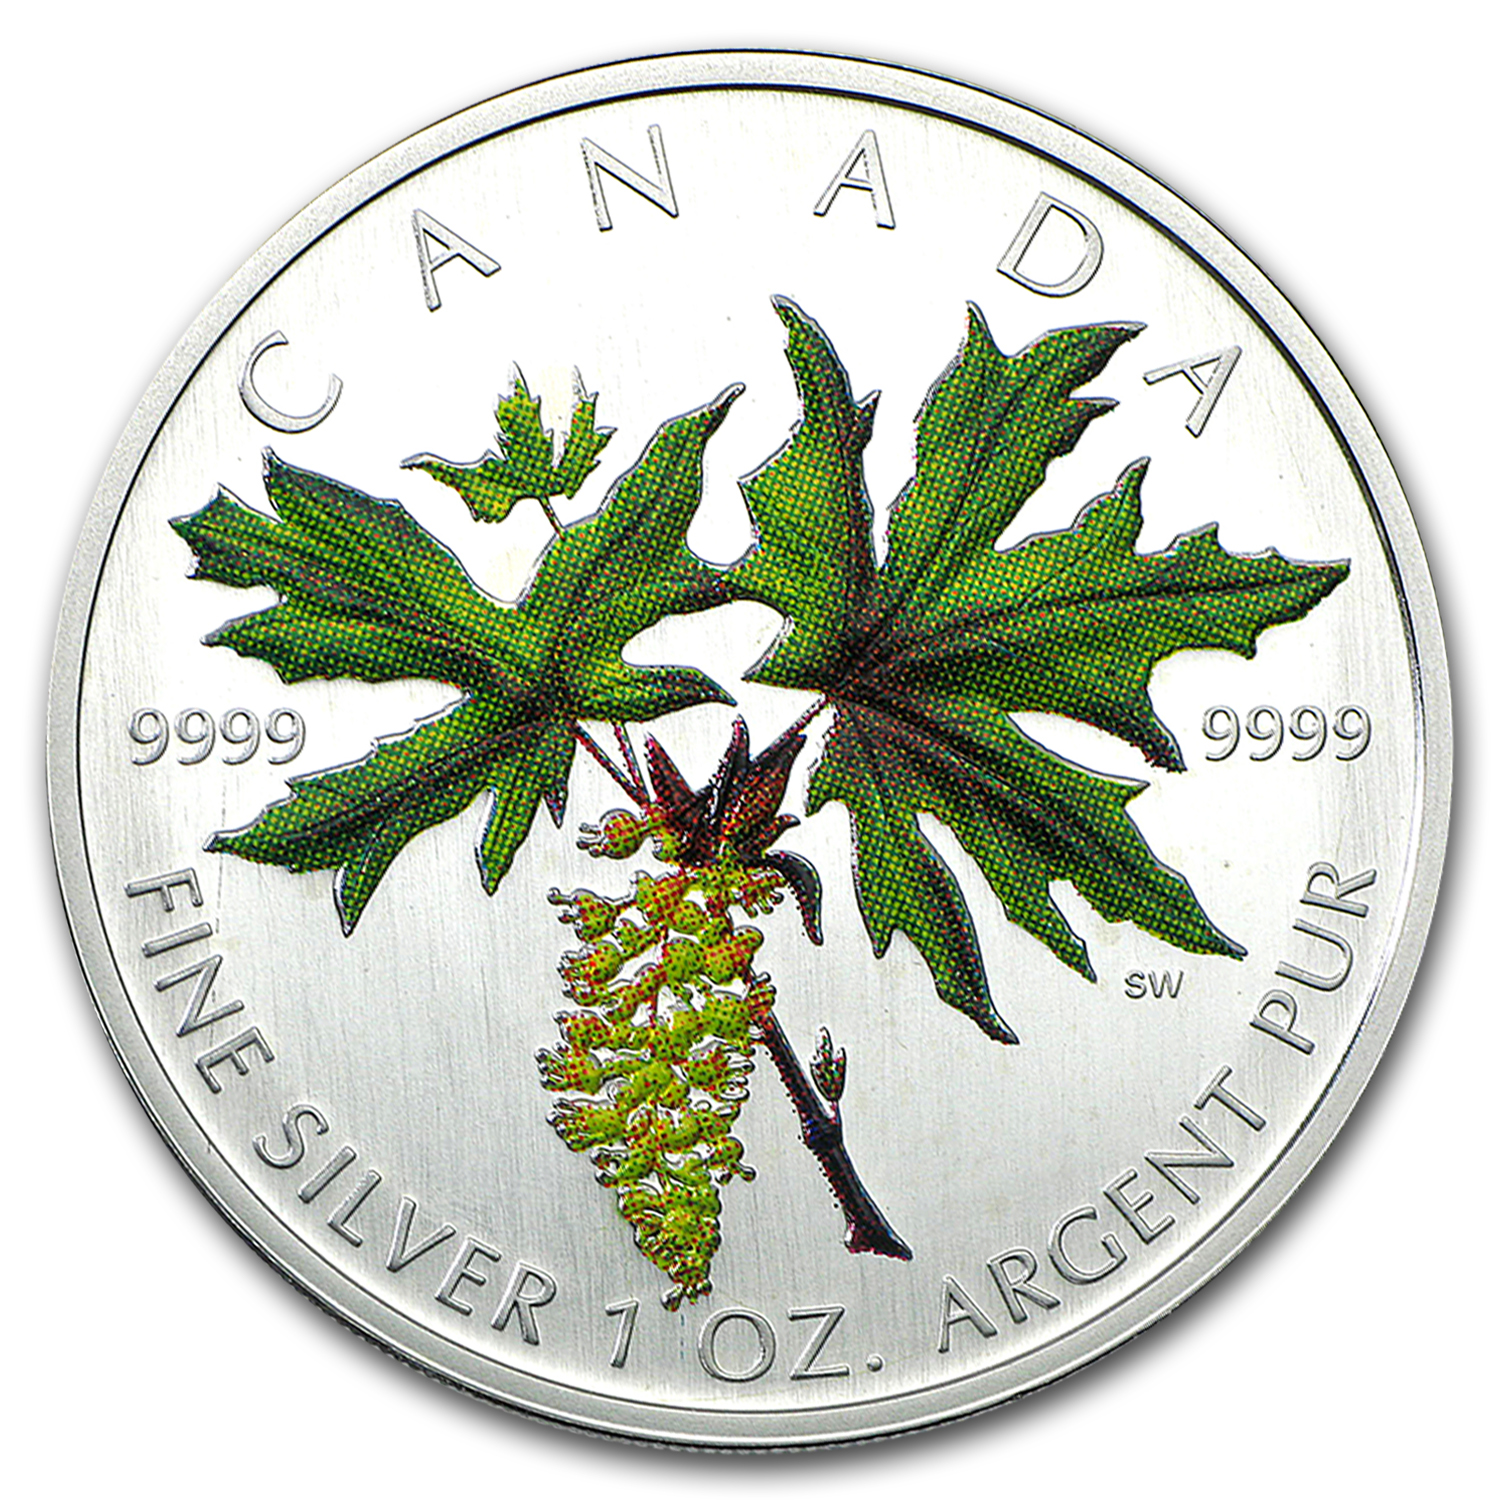 2005 Canada 1 oz Silver Maple Leaf Colored (Broadleaf Maple)